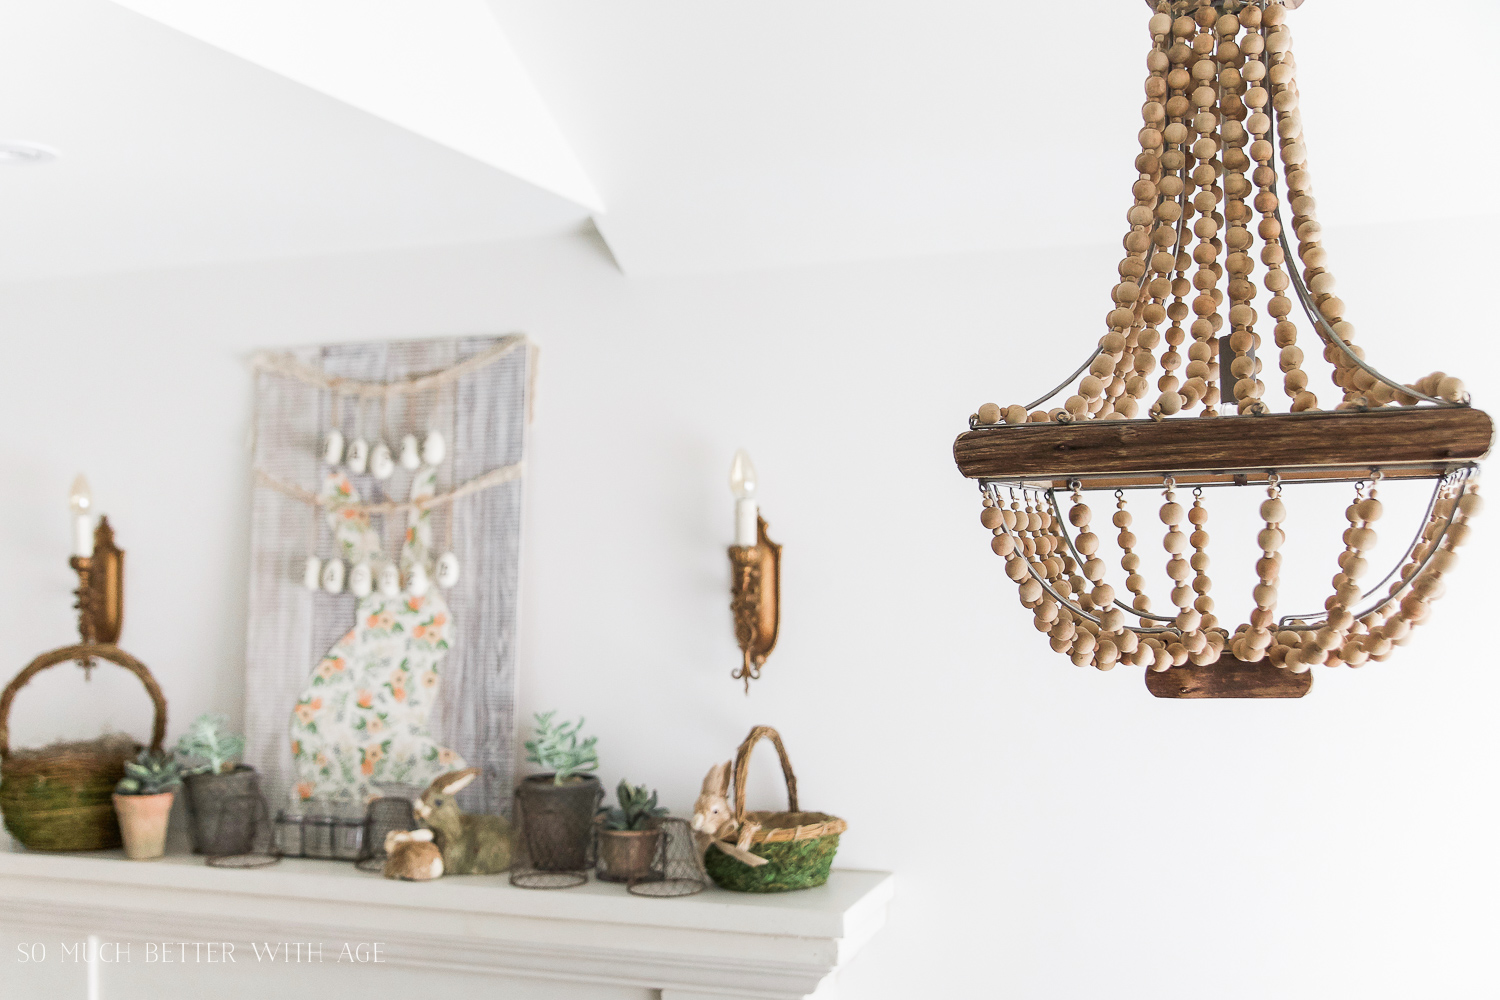 Spring Mantel/beaded wooden chandelier - So Much Better With Age